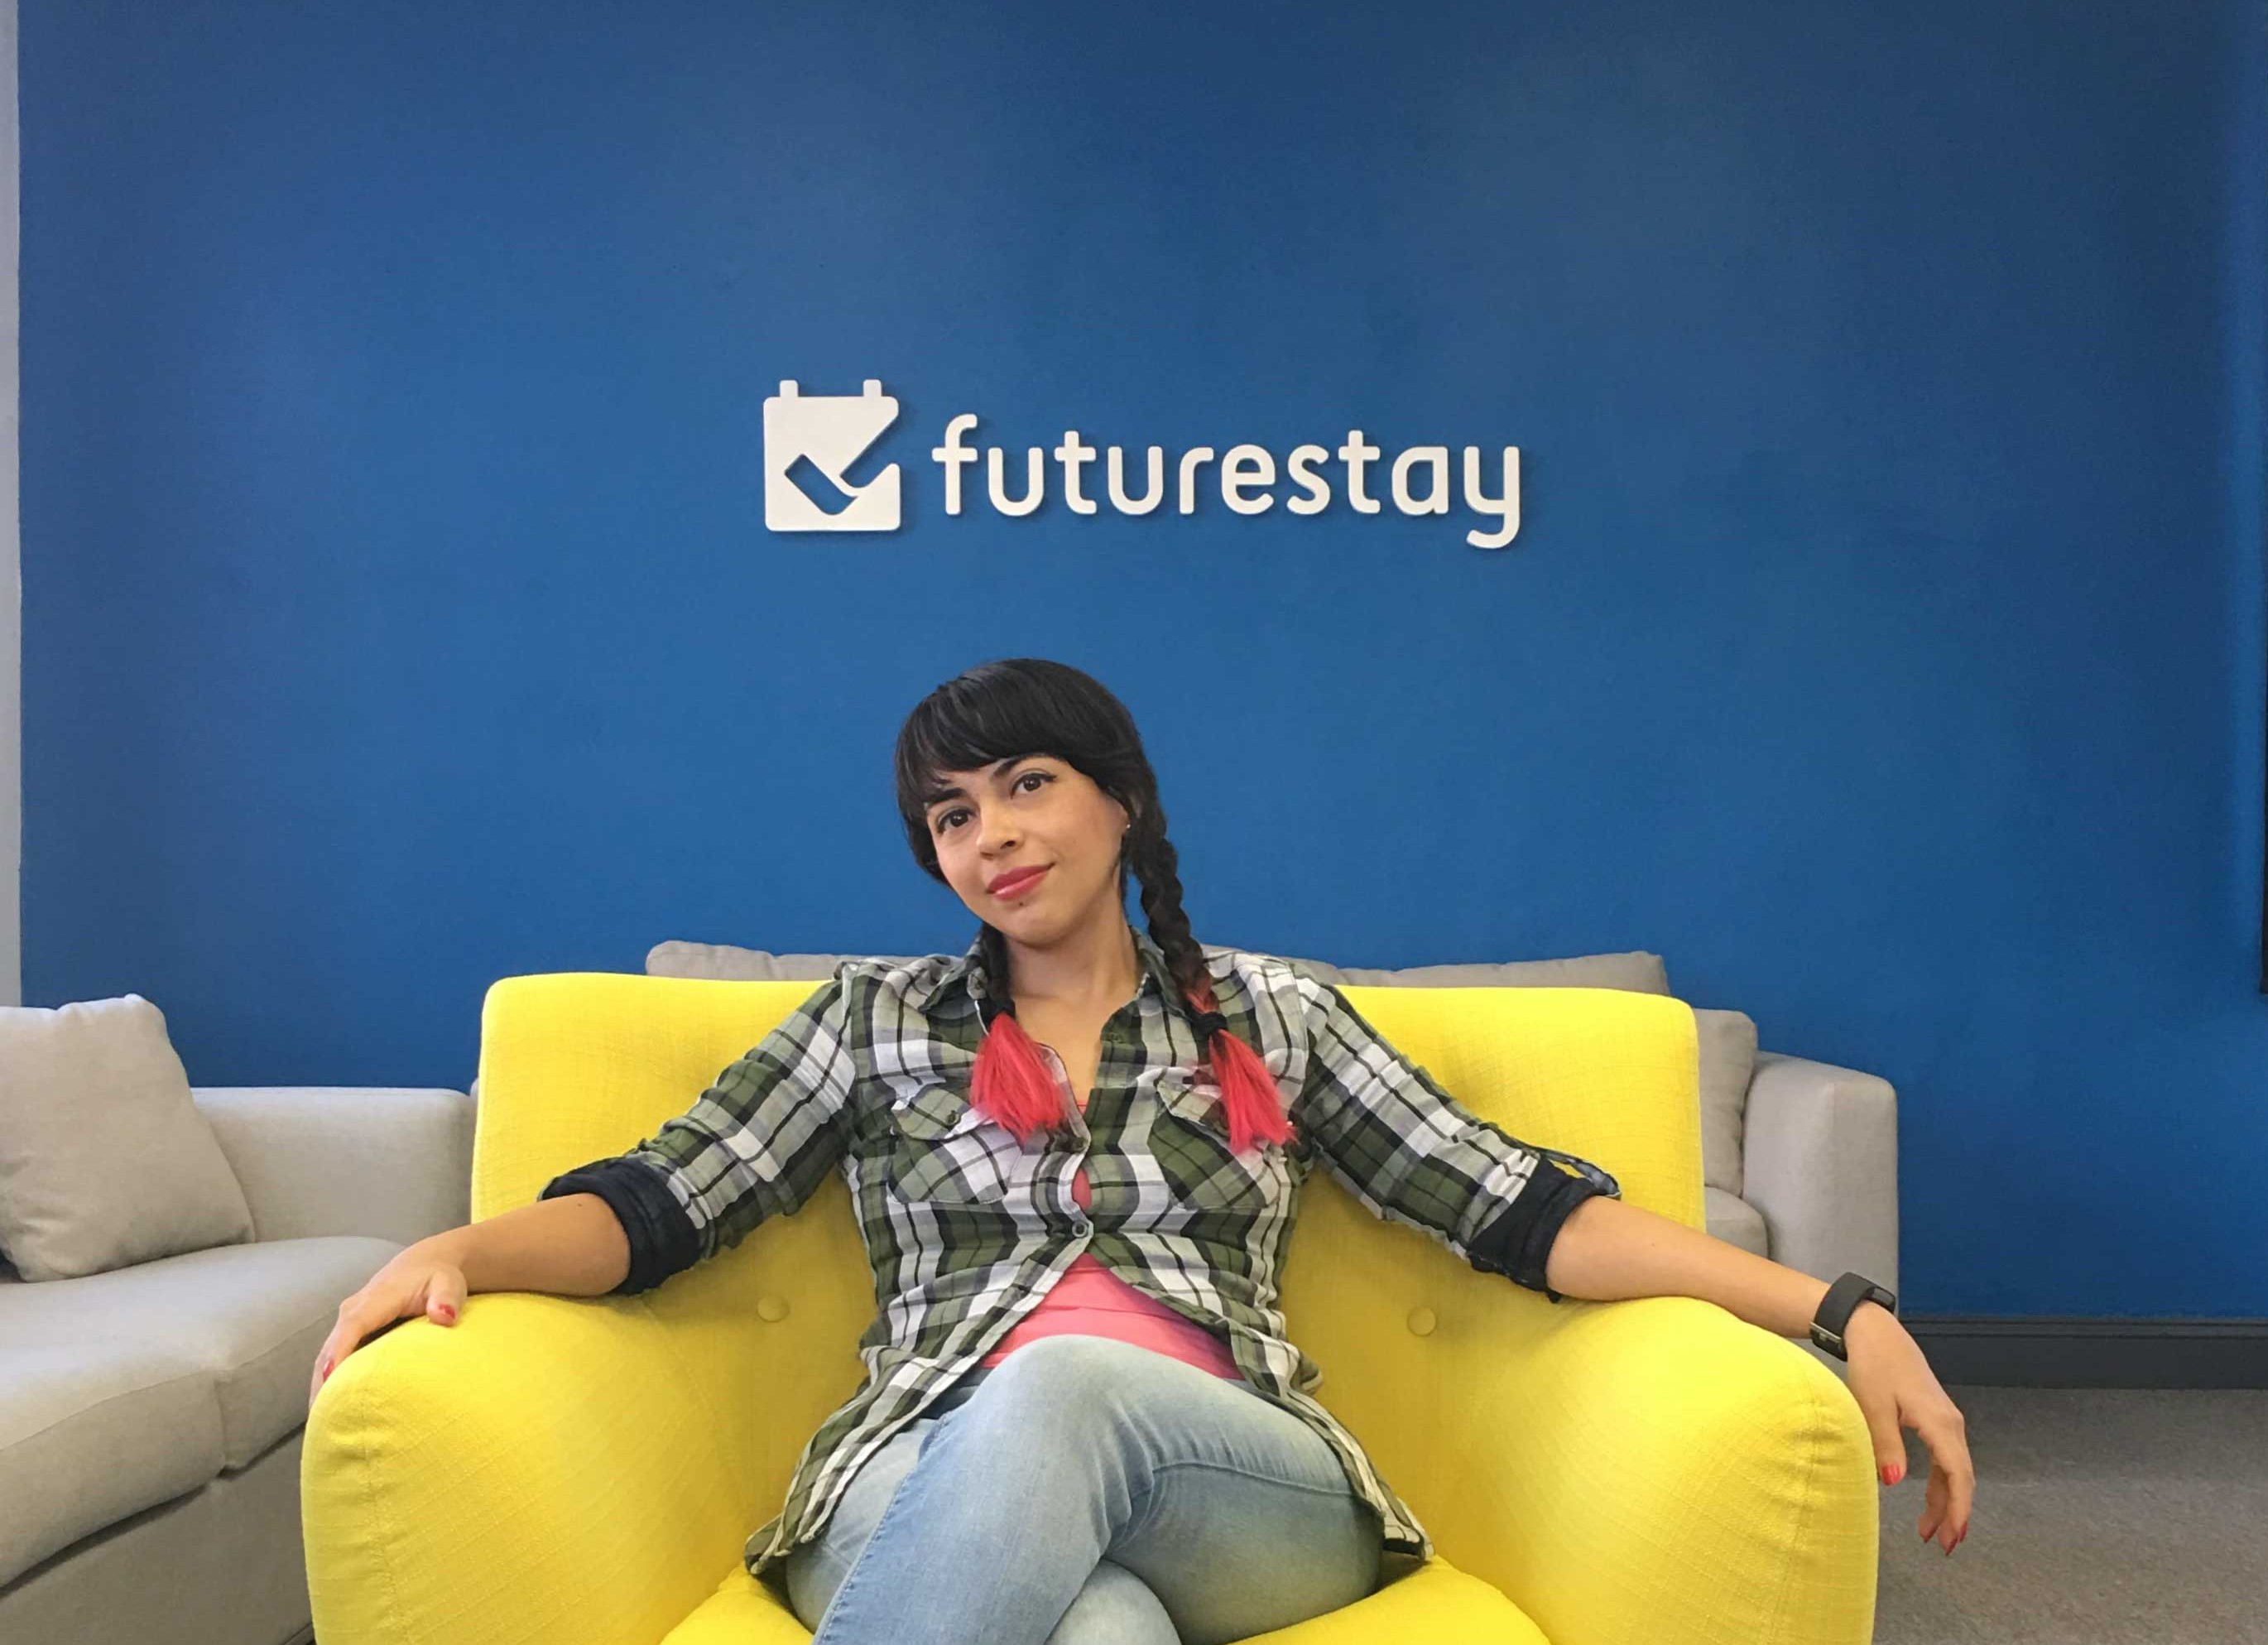 Abbi in front of the Futurestay logo